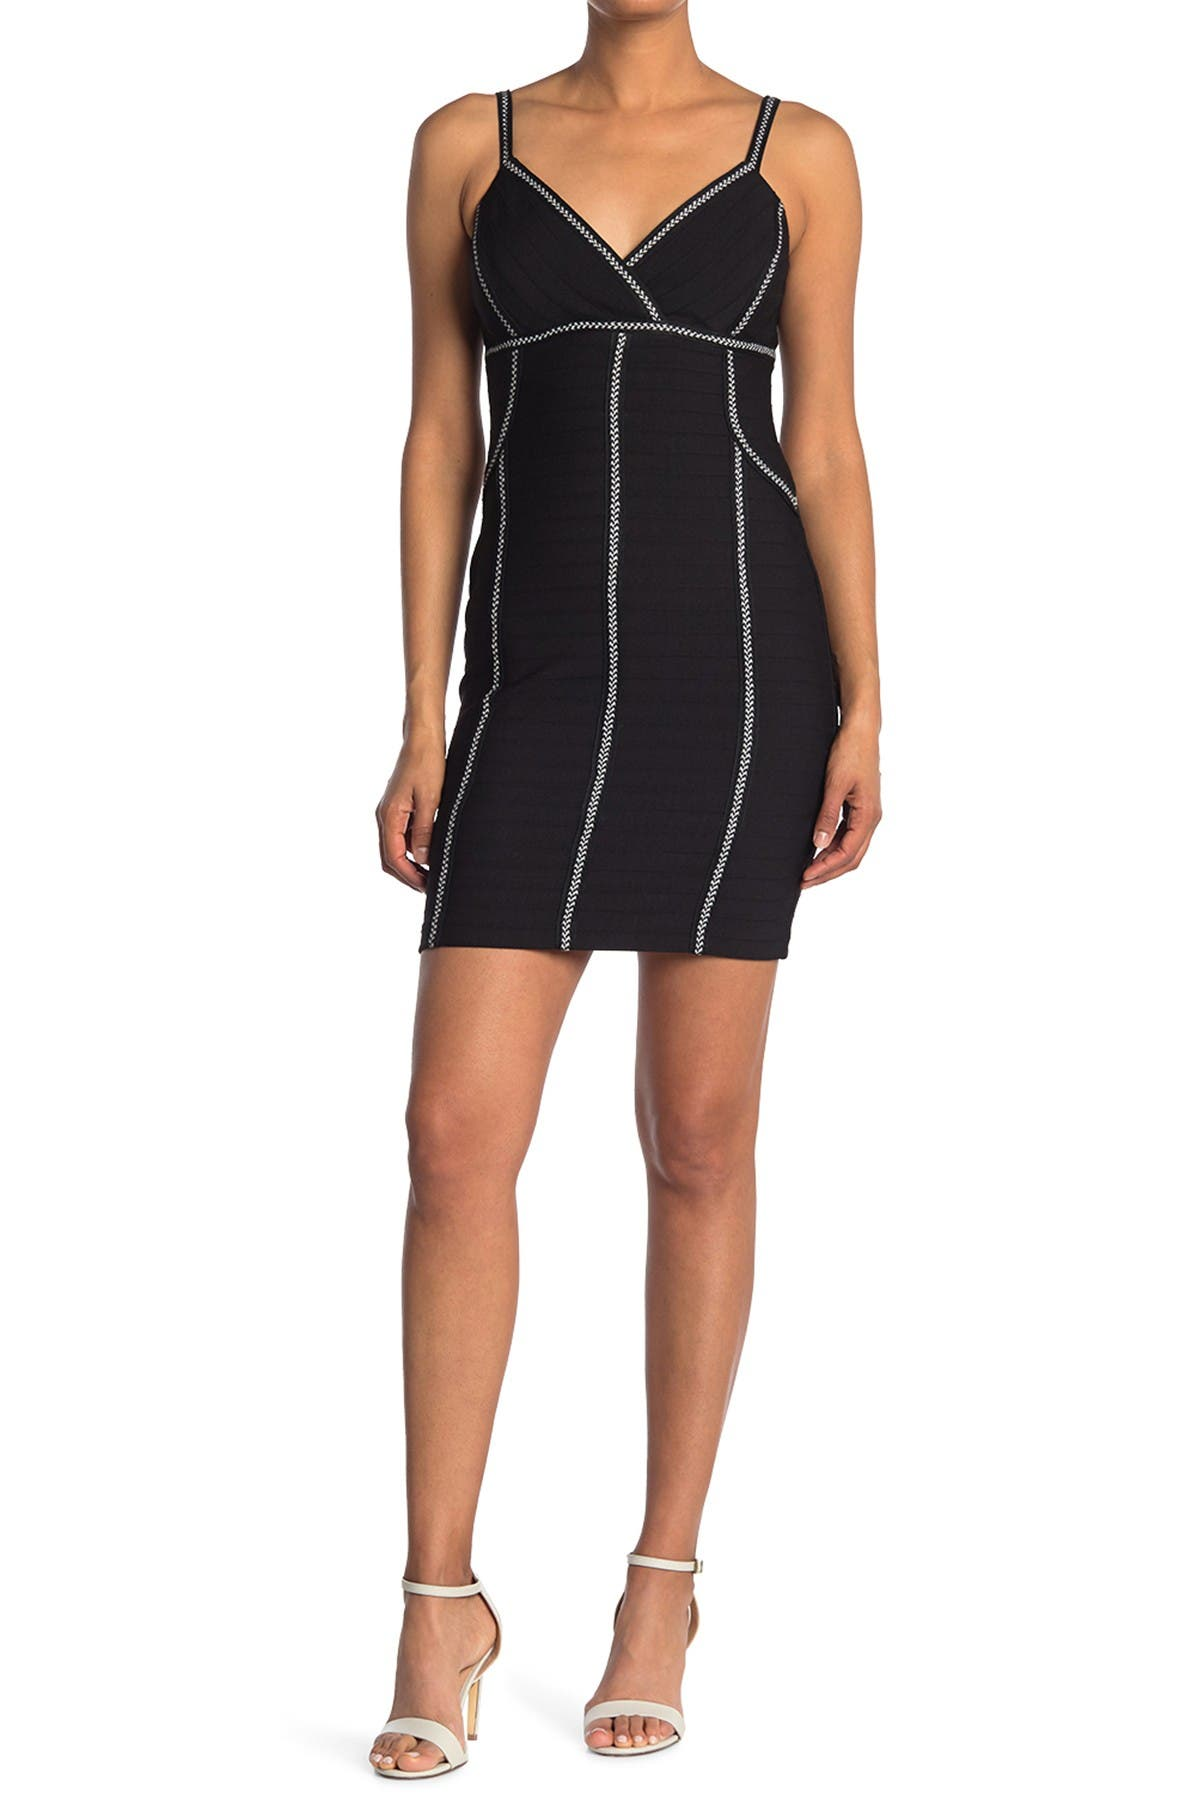 Image of GUESS Contrast Stitch Bodycon Mini Dress